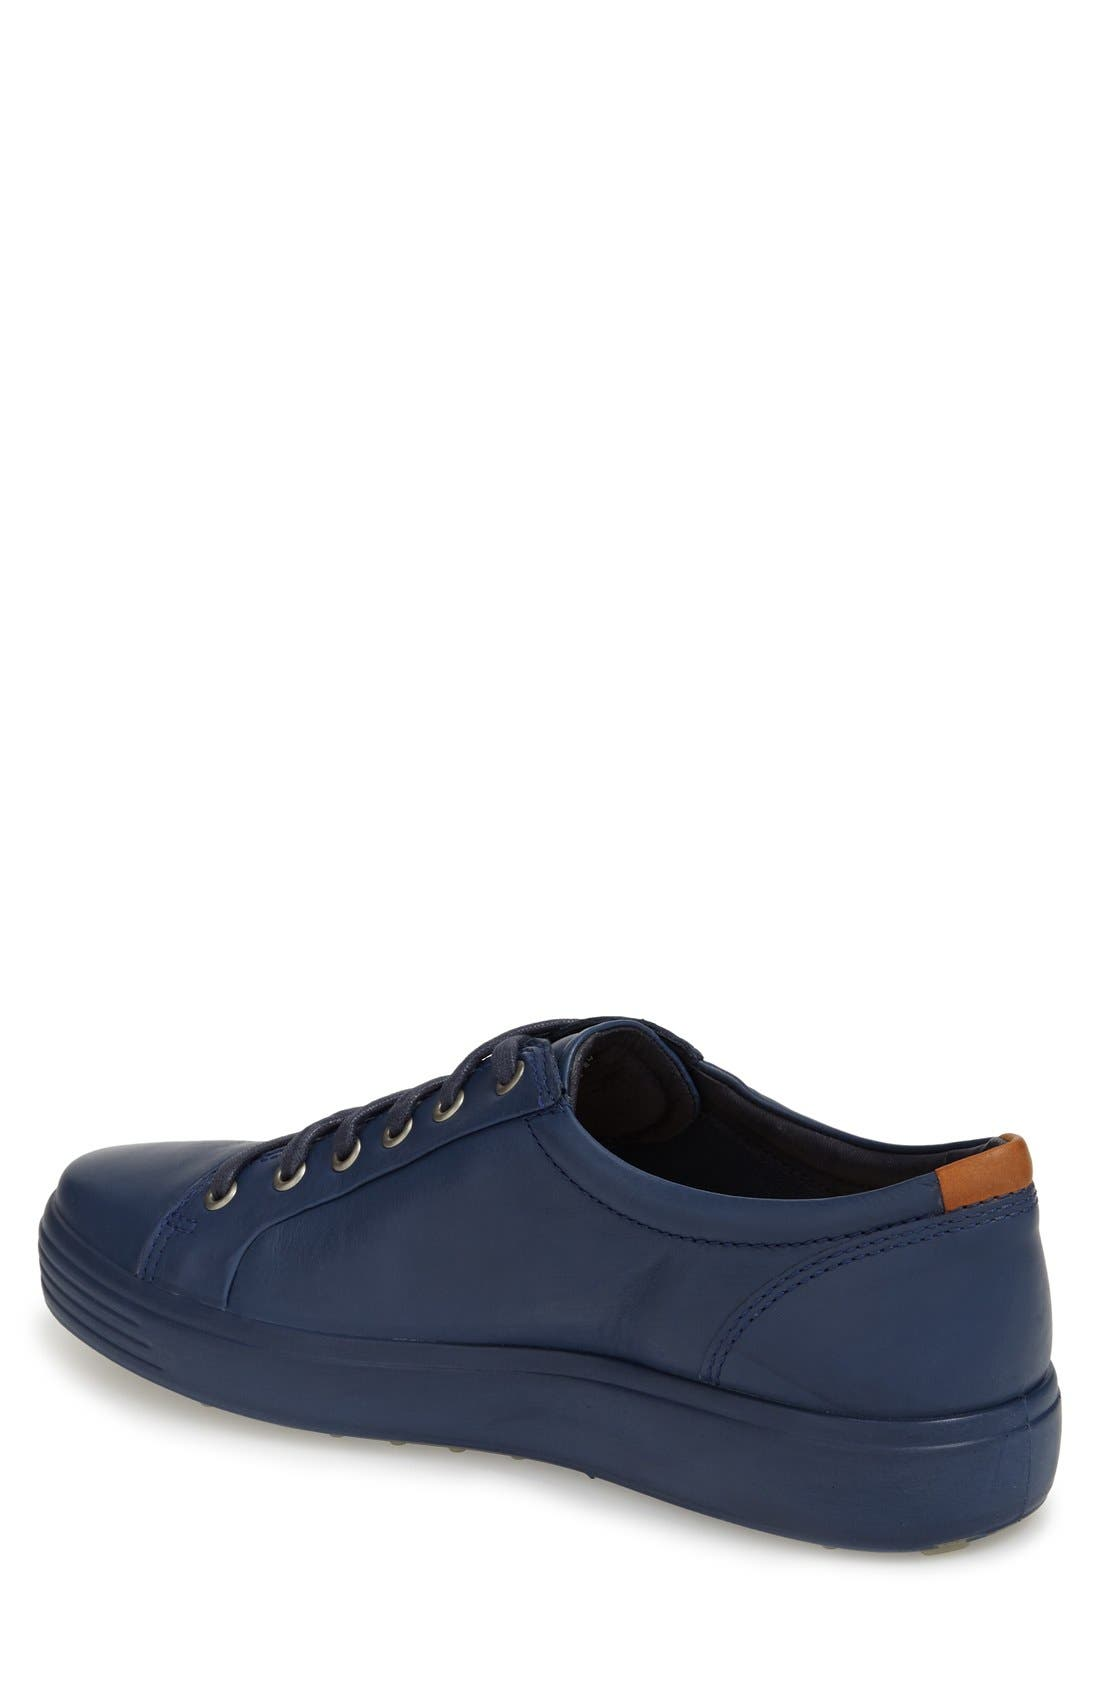 Soft VII Lace-Up Sneaker,                             Alternate thumbnail 37, color,